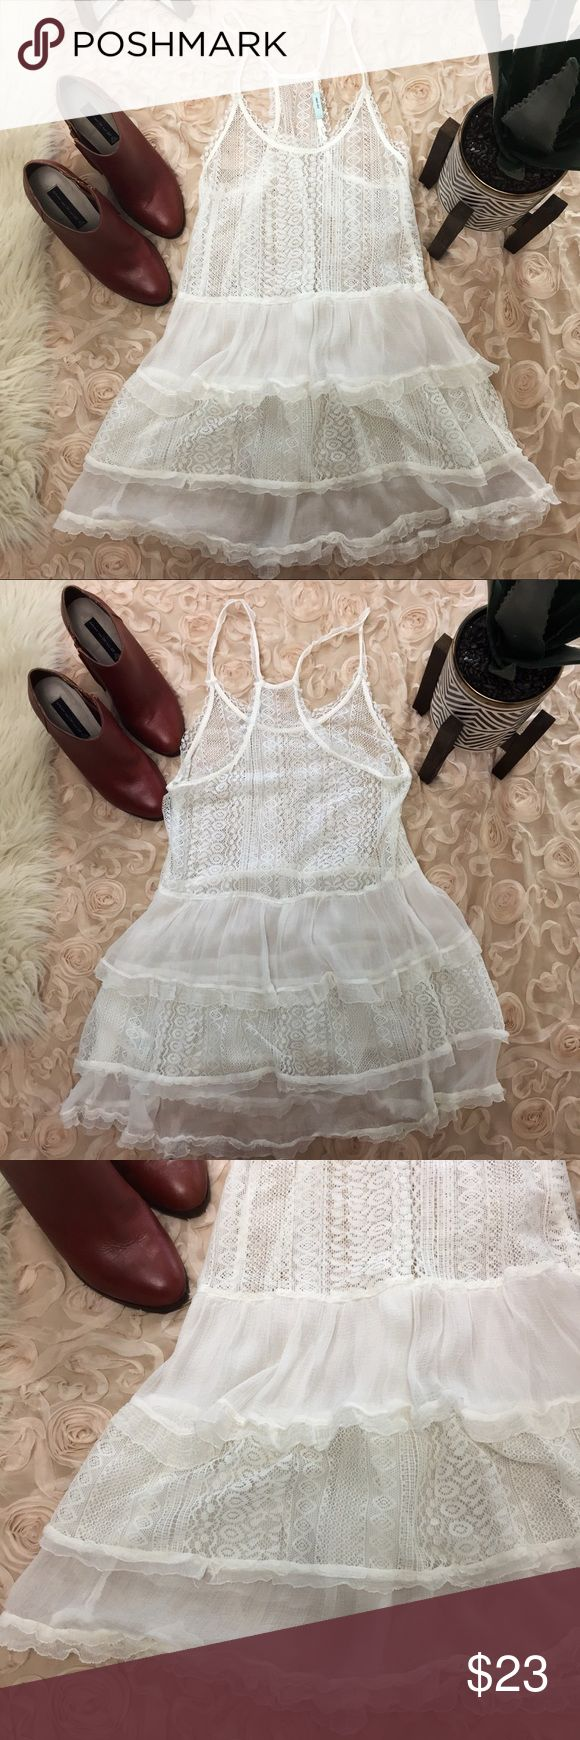 """U O •  kimchi blue  • lace racerback top Urban outfitters kimchi blue ivory/ white sheer lace racerback top. Approx 28"""" long 15"""" pit to pit. Excellent condition! Gorgeous top! Fits a little longer so it can be worn with leggings. Sheer is so on trend right now! Urban Outfitters Tops"""